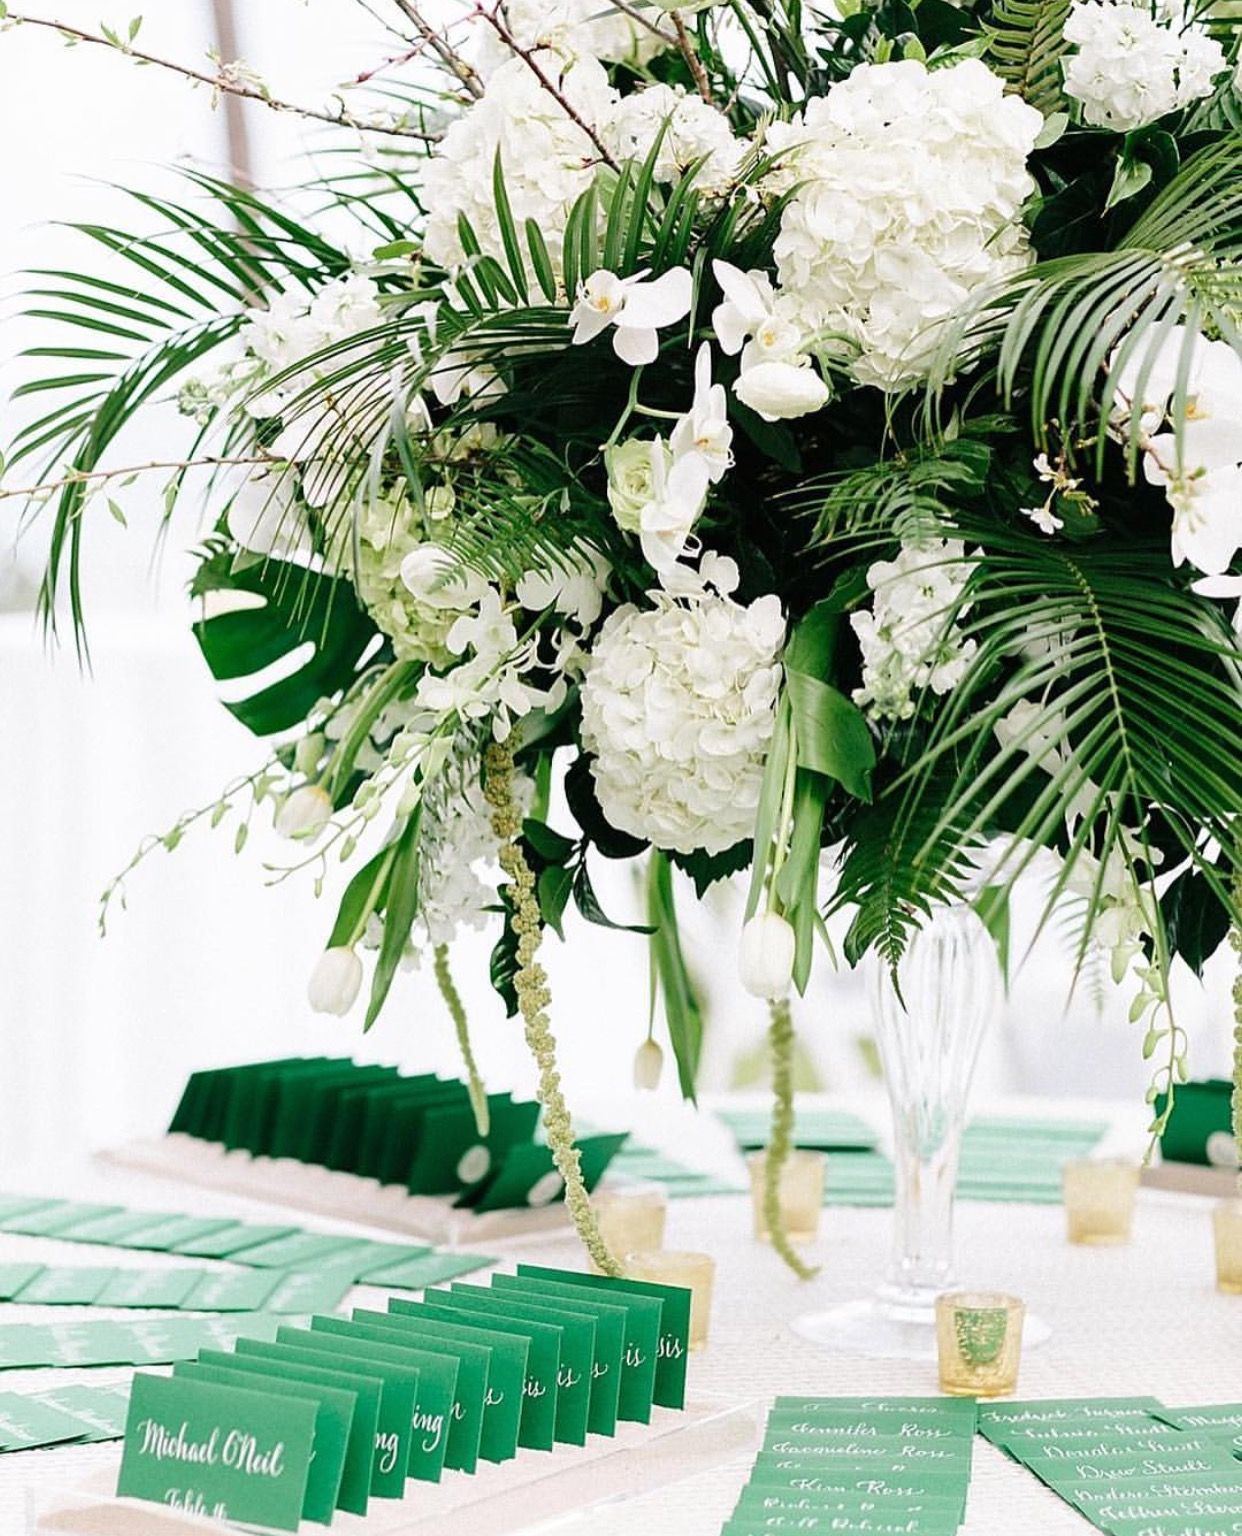 Large Centerpiece With White Hydrangeas And Palms Palm Wedding Decor Palm Wedding Centerpieces Tropical Wedding Centerpieces